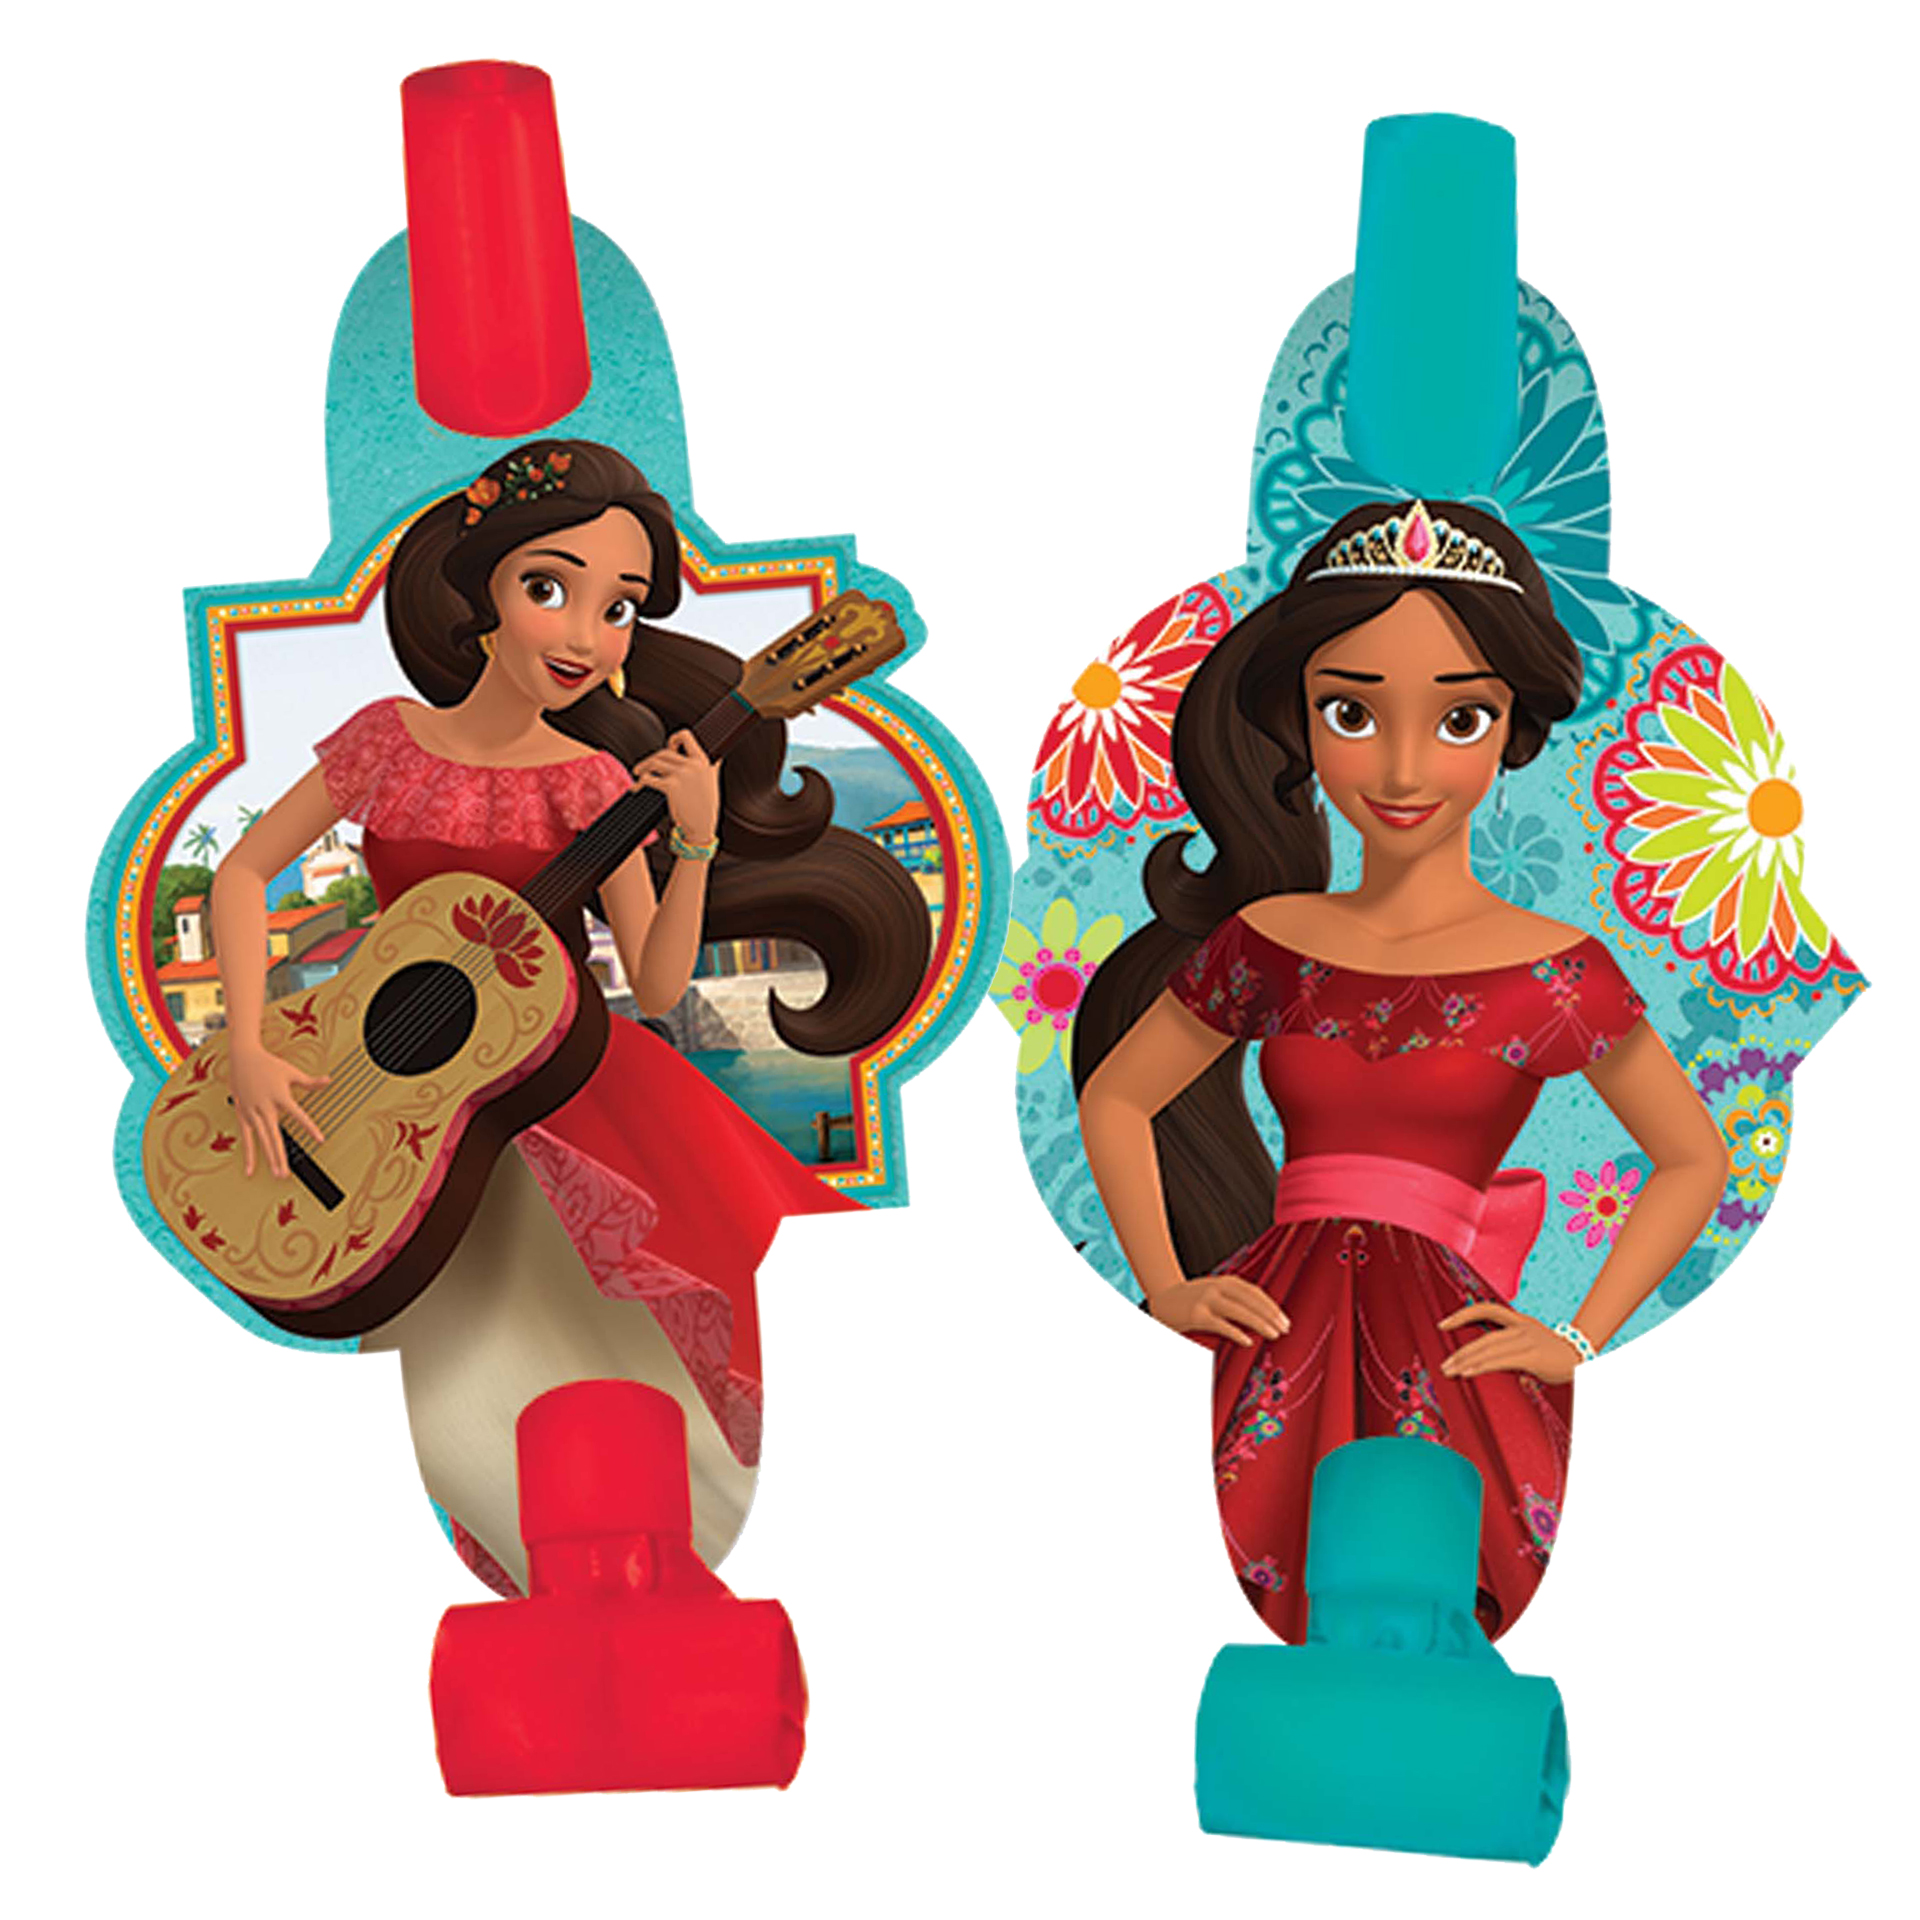 1920x1920 Elena Of Avalor Birthday Party Supplies, Theme Party Packs